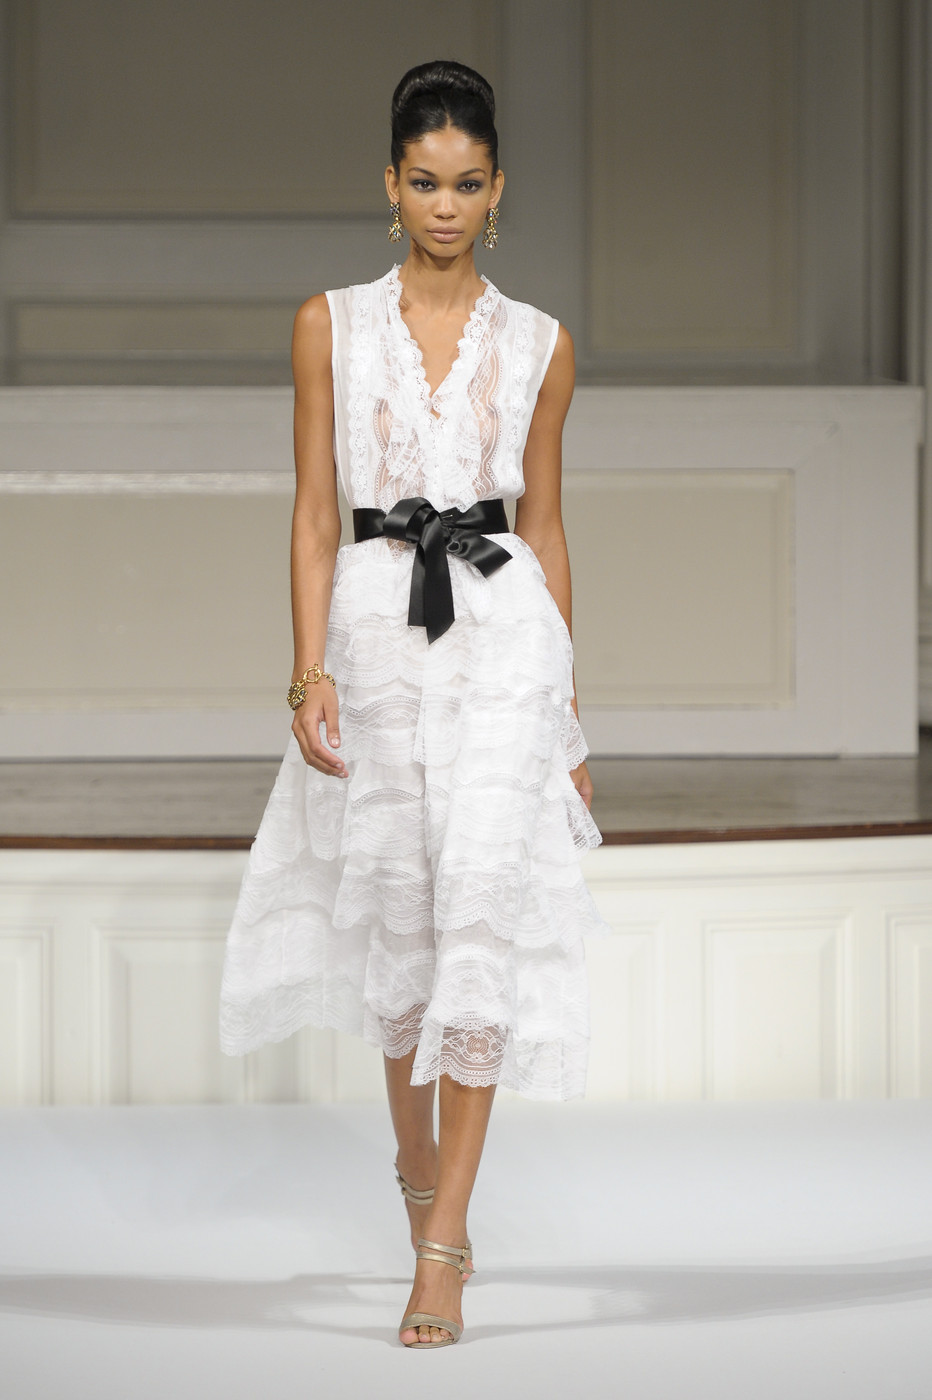 via fashioned by love | Oscar de la Renta Spring/Summer 2011 White